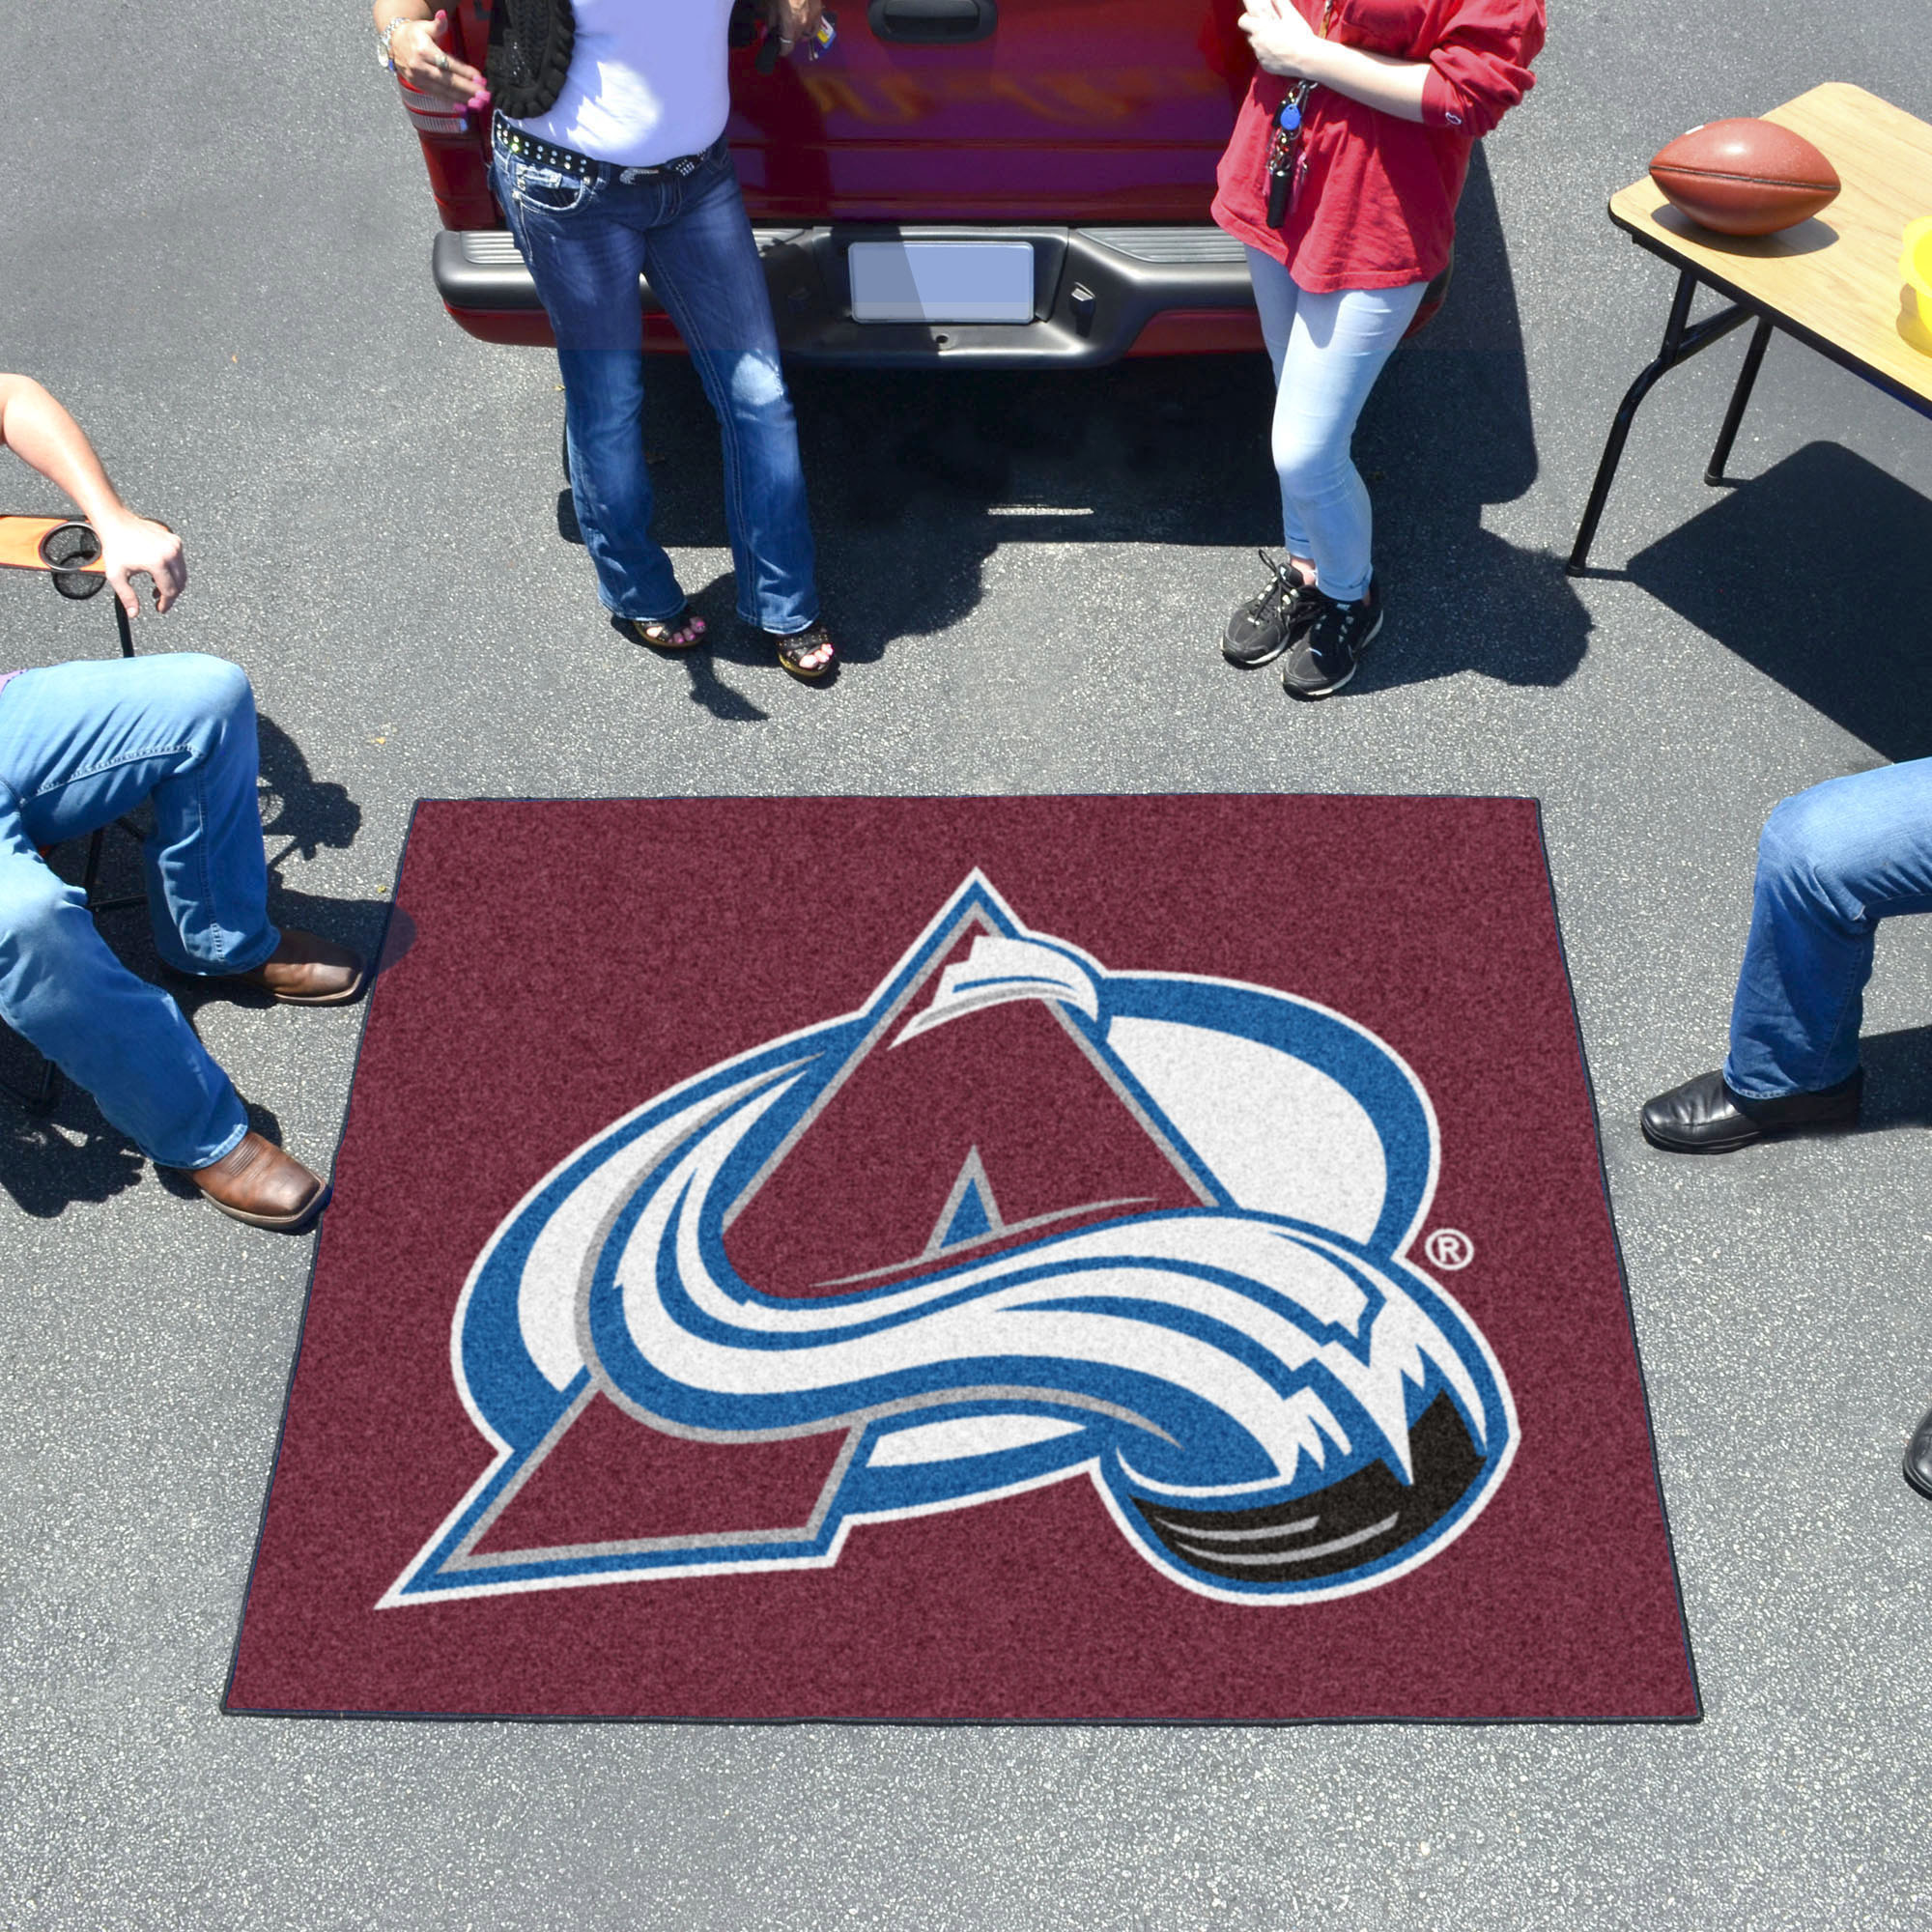 Colorado Avalanche TAILGATER 60 x 72 Rug